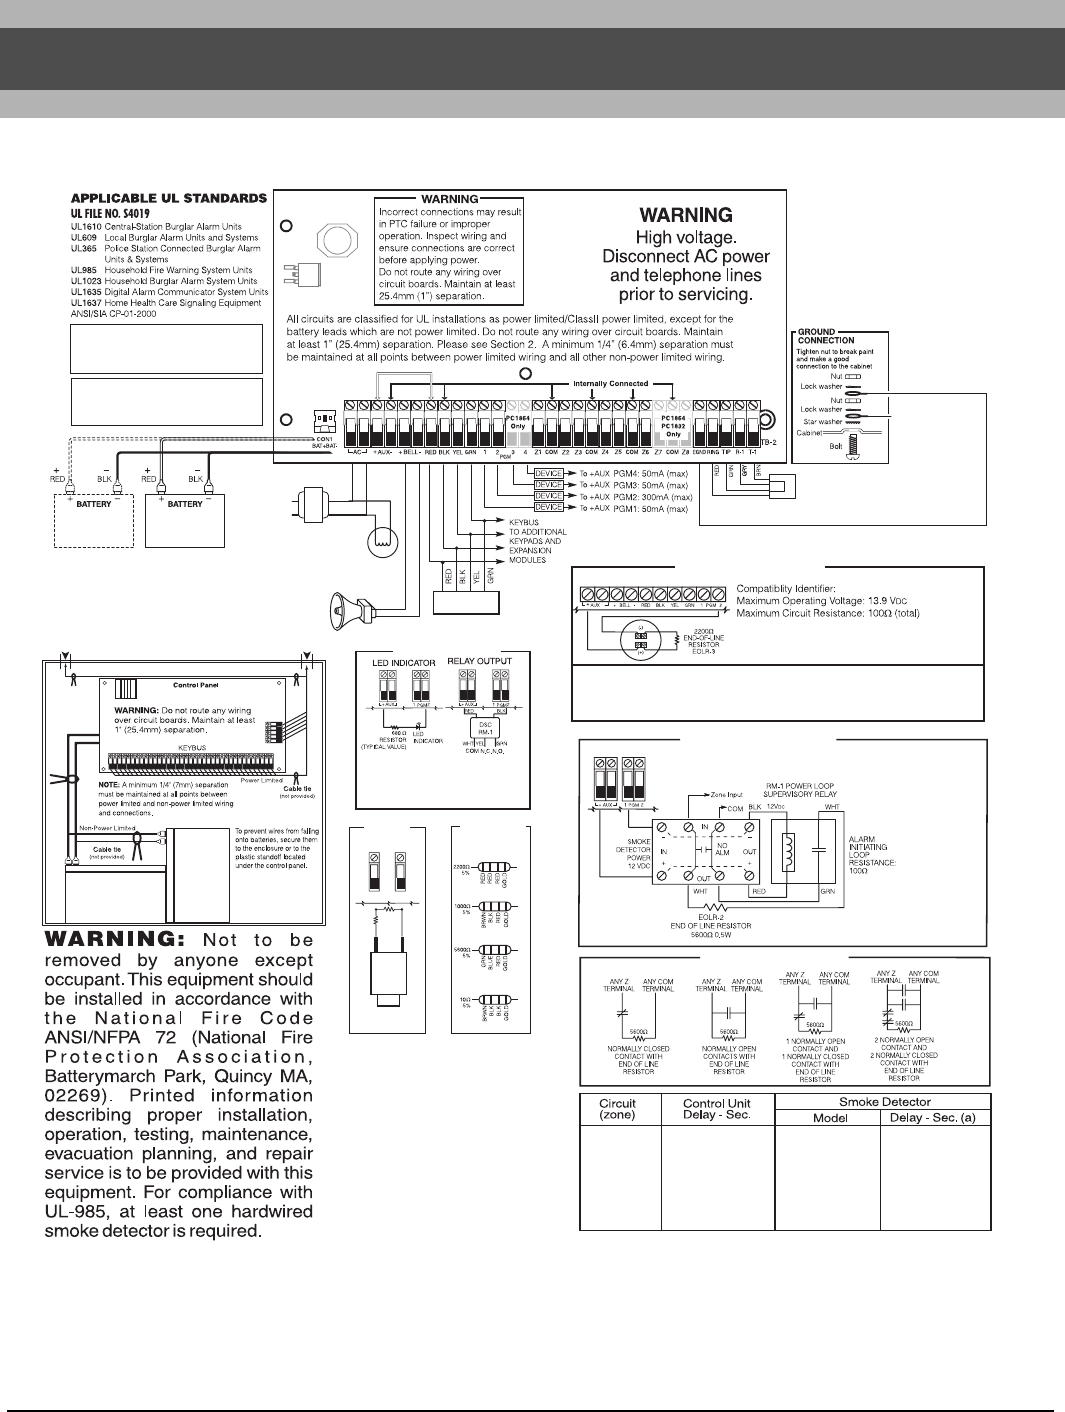 Ademco: User Manual For Ademco Vista 20p